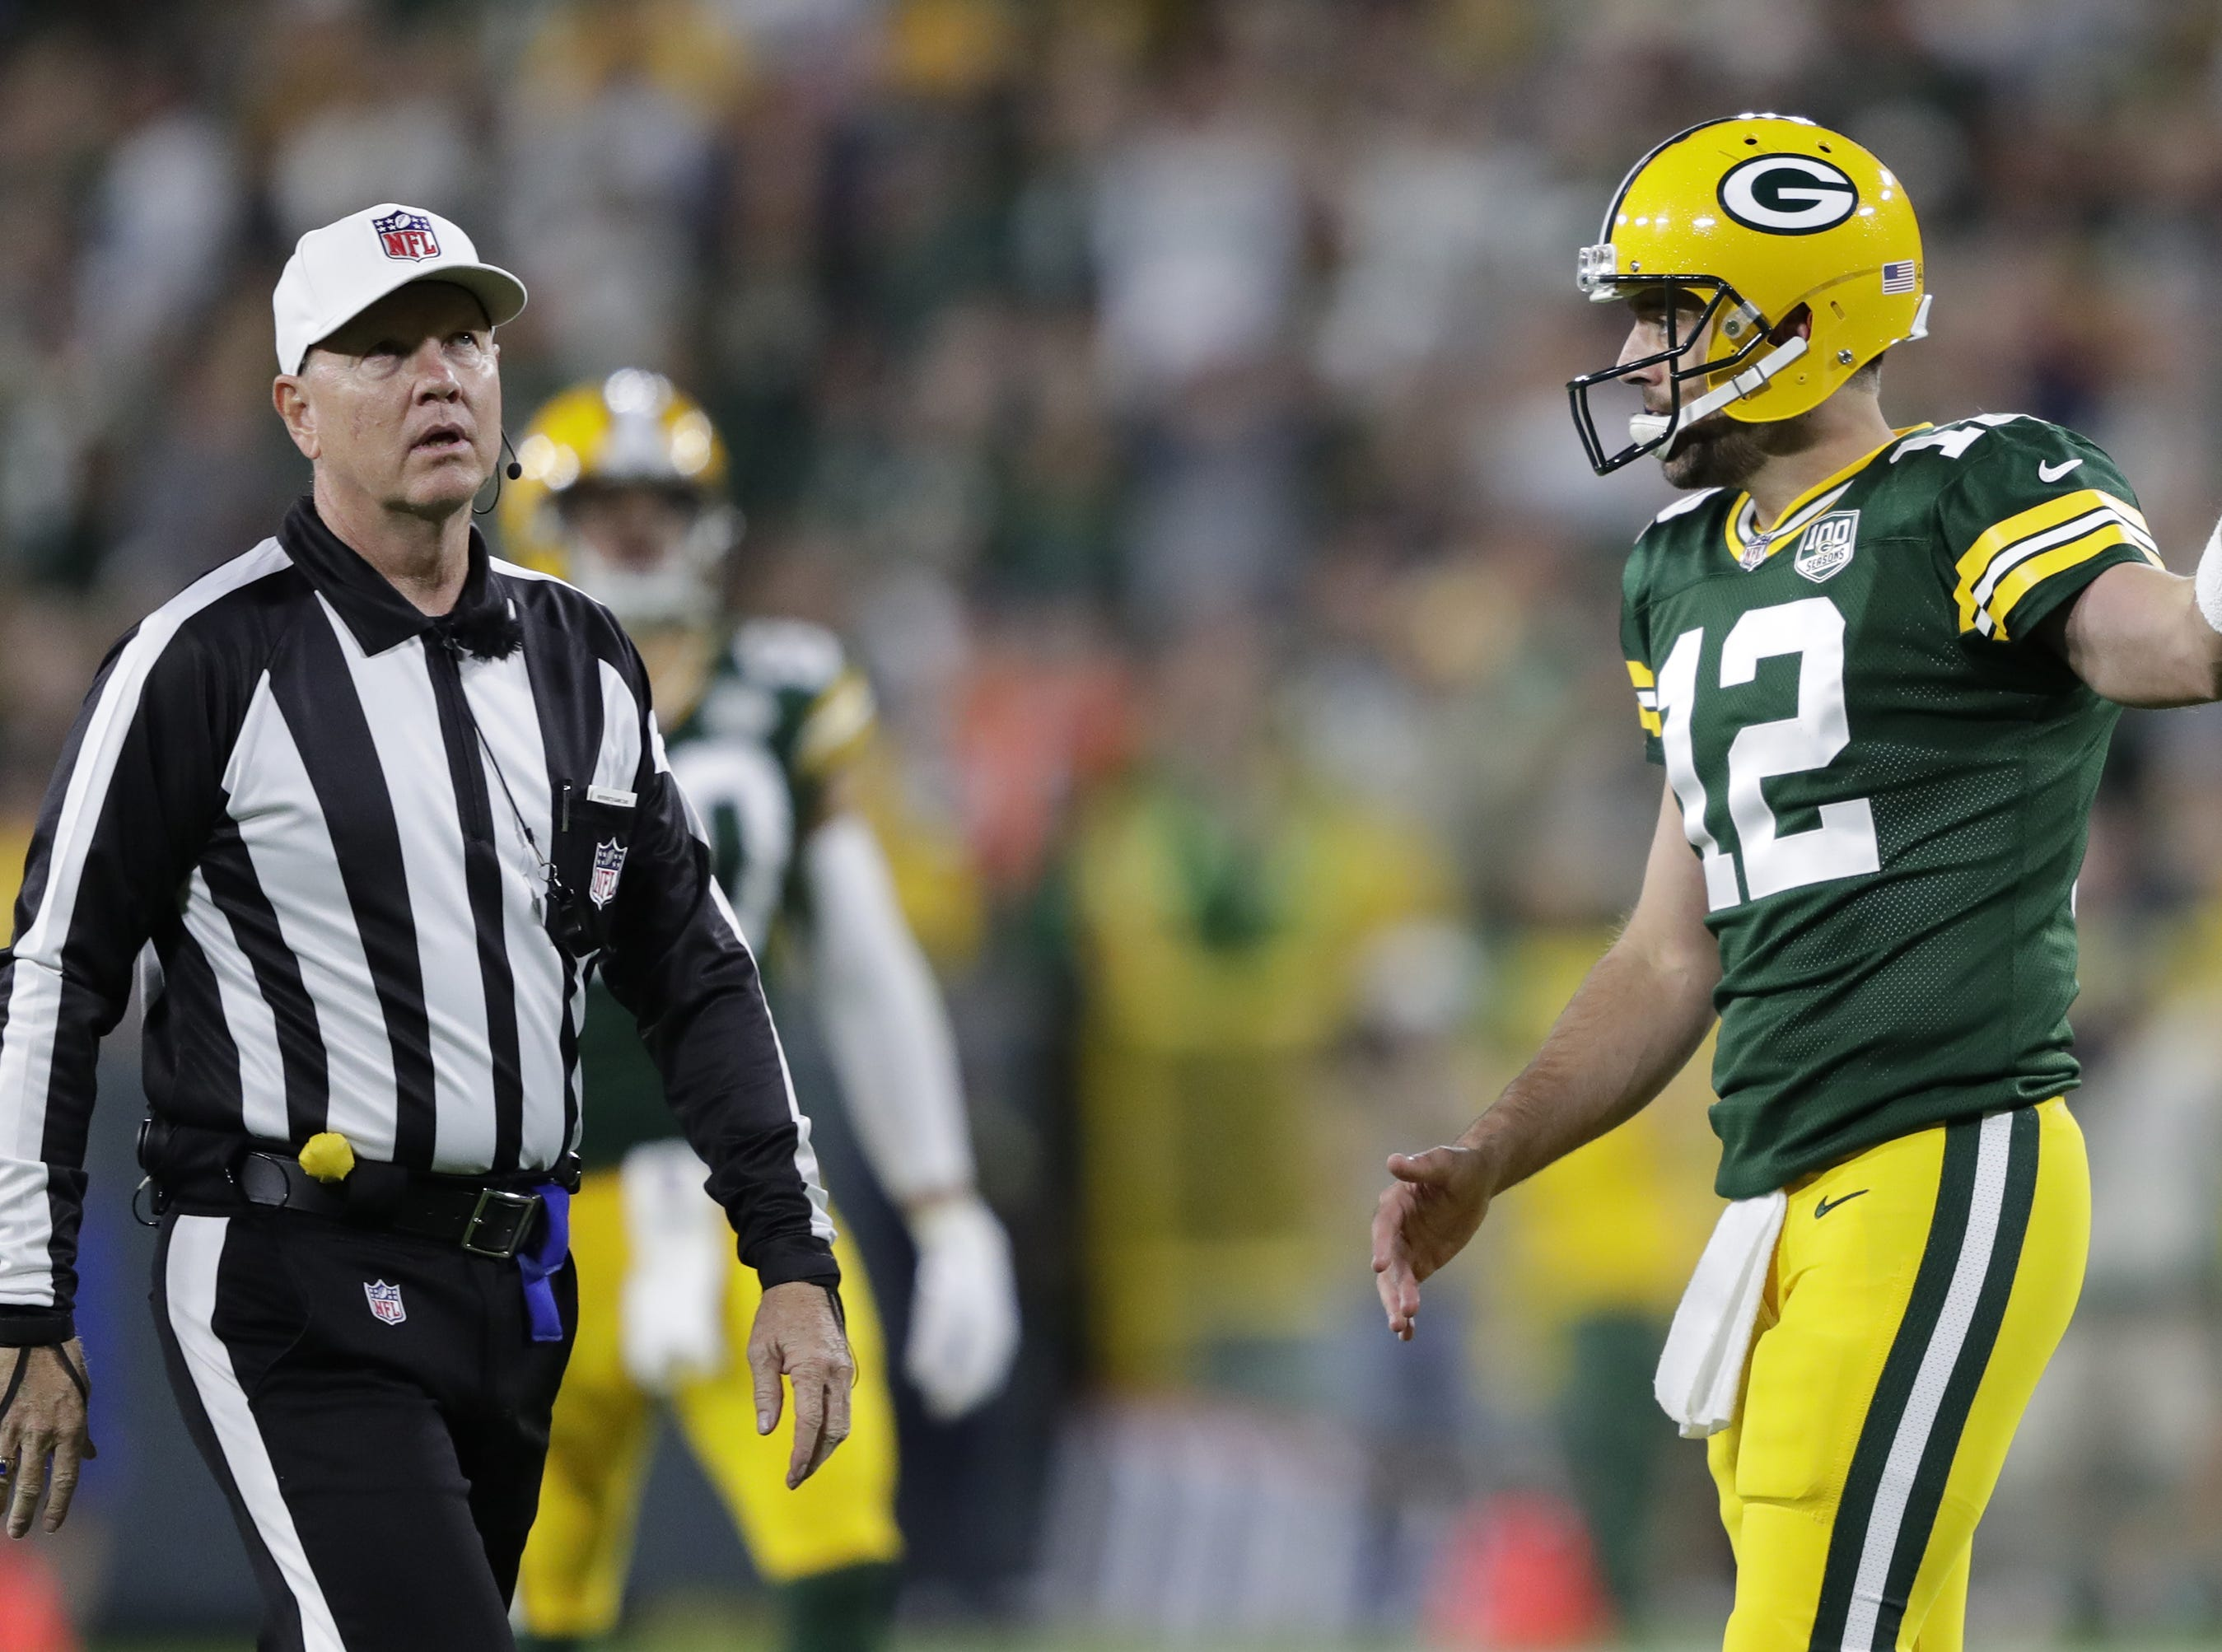 Green Bay Packers quarterback Aaron Rodgers questions an officials call against the offense during the game against the Chicago Bears in the first quarter Sunday, Sept. 9, 2018, at Lambeau Field in Green Bay, Wis.